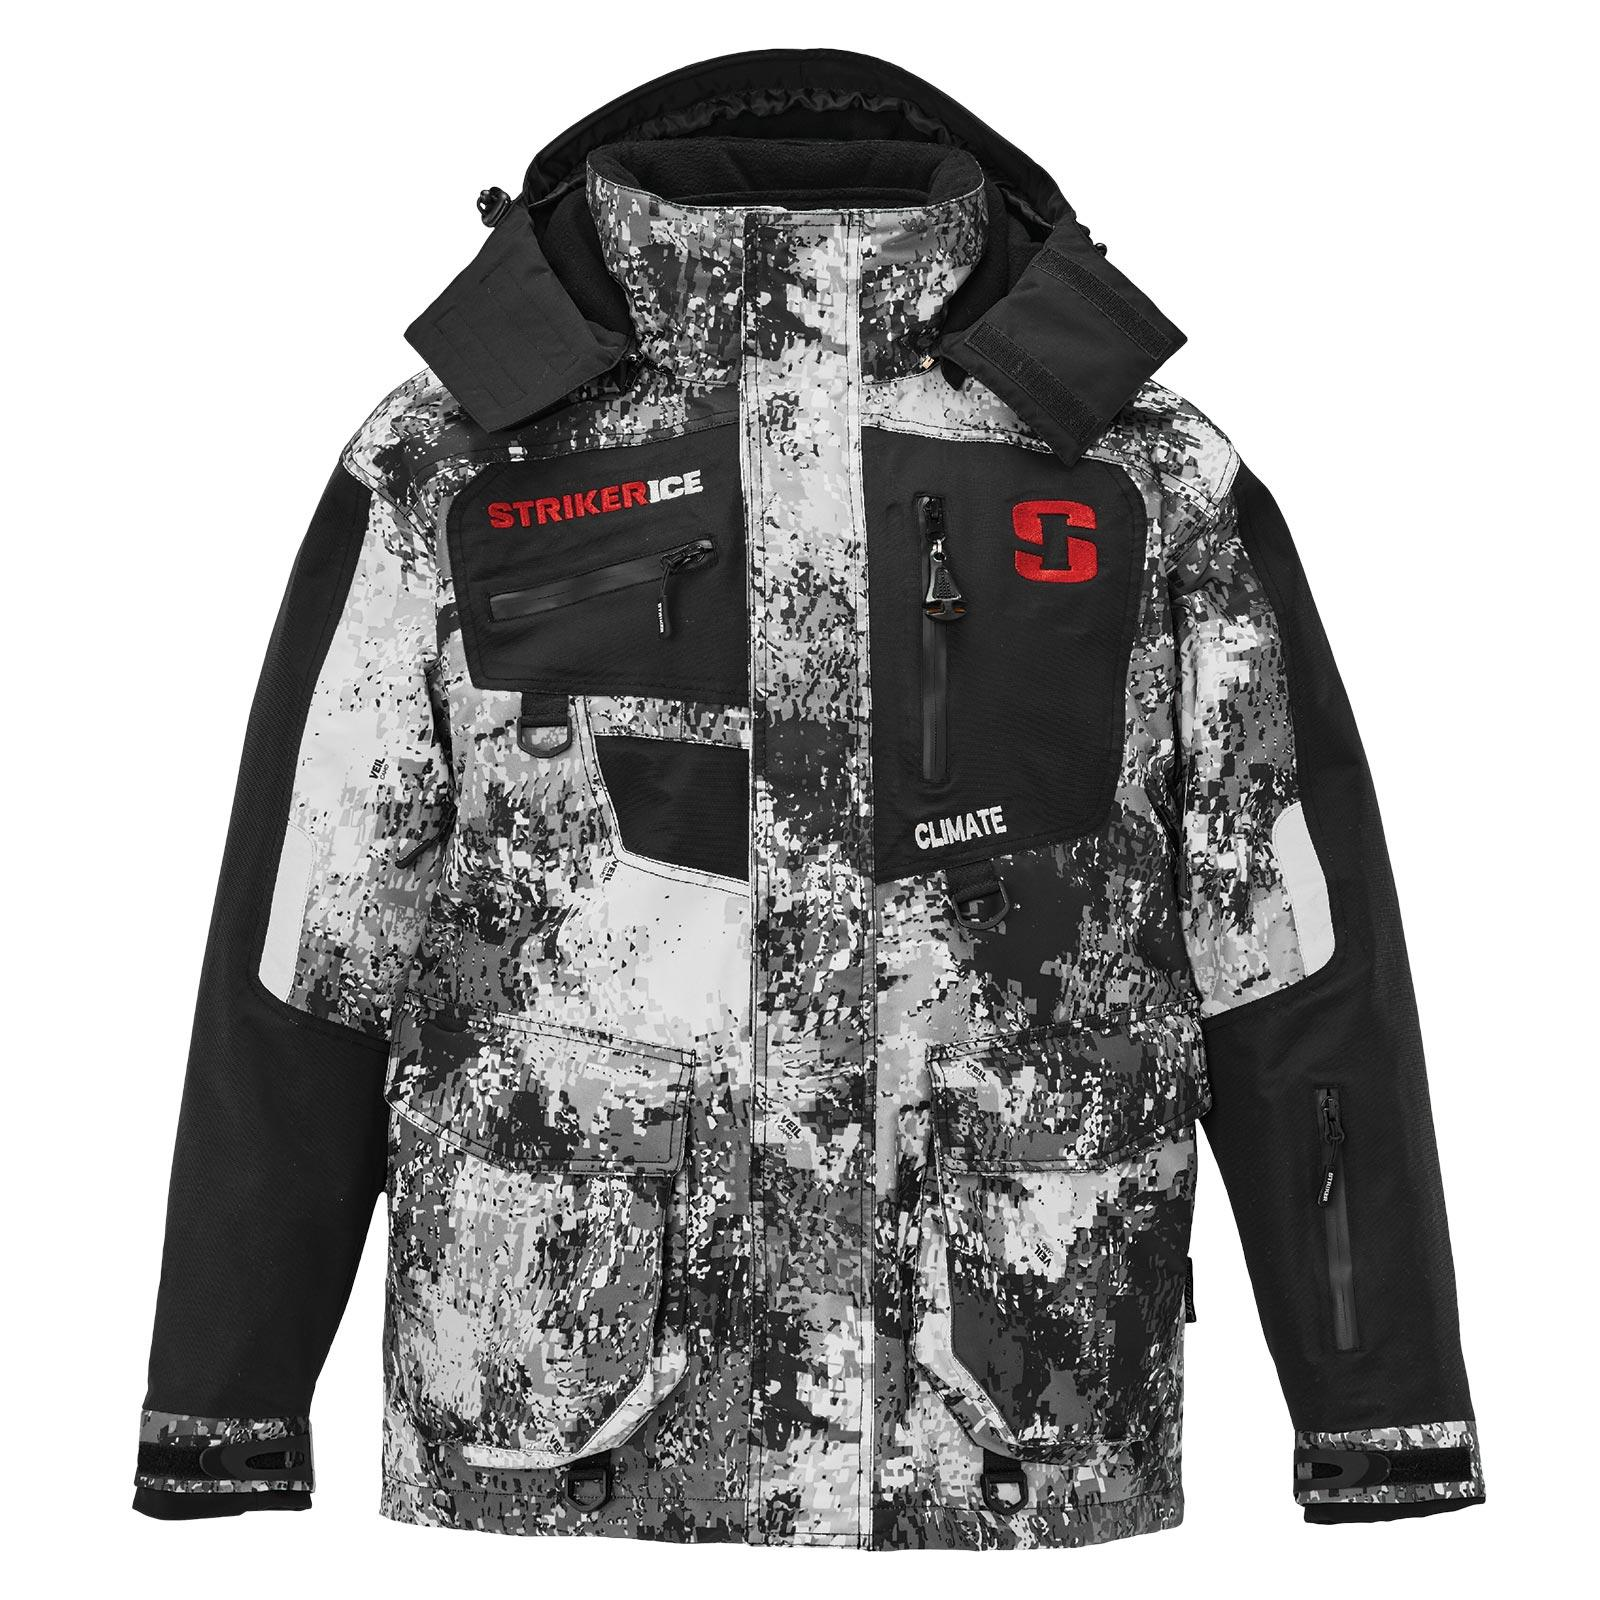 Striker Ice Mens Fishing Cold Weather Climate G2 Softshell Jacket